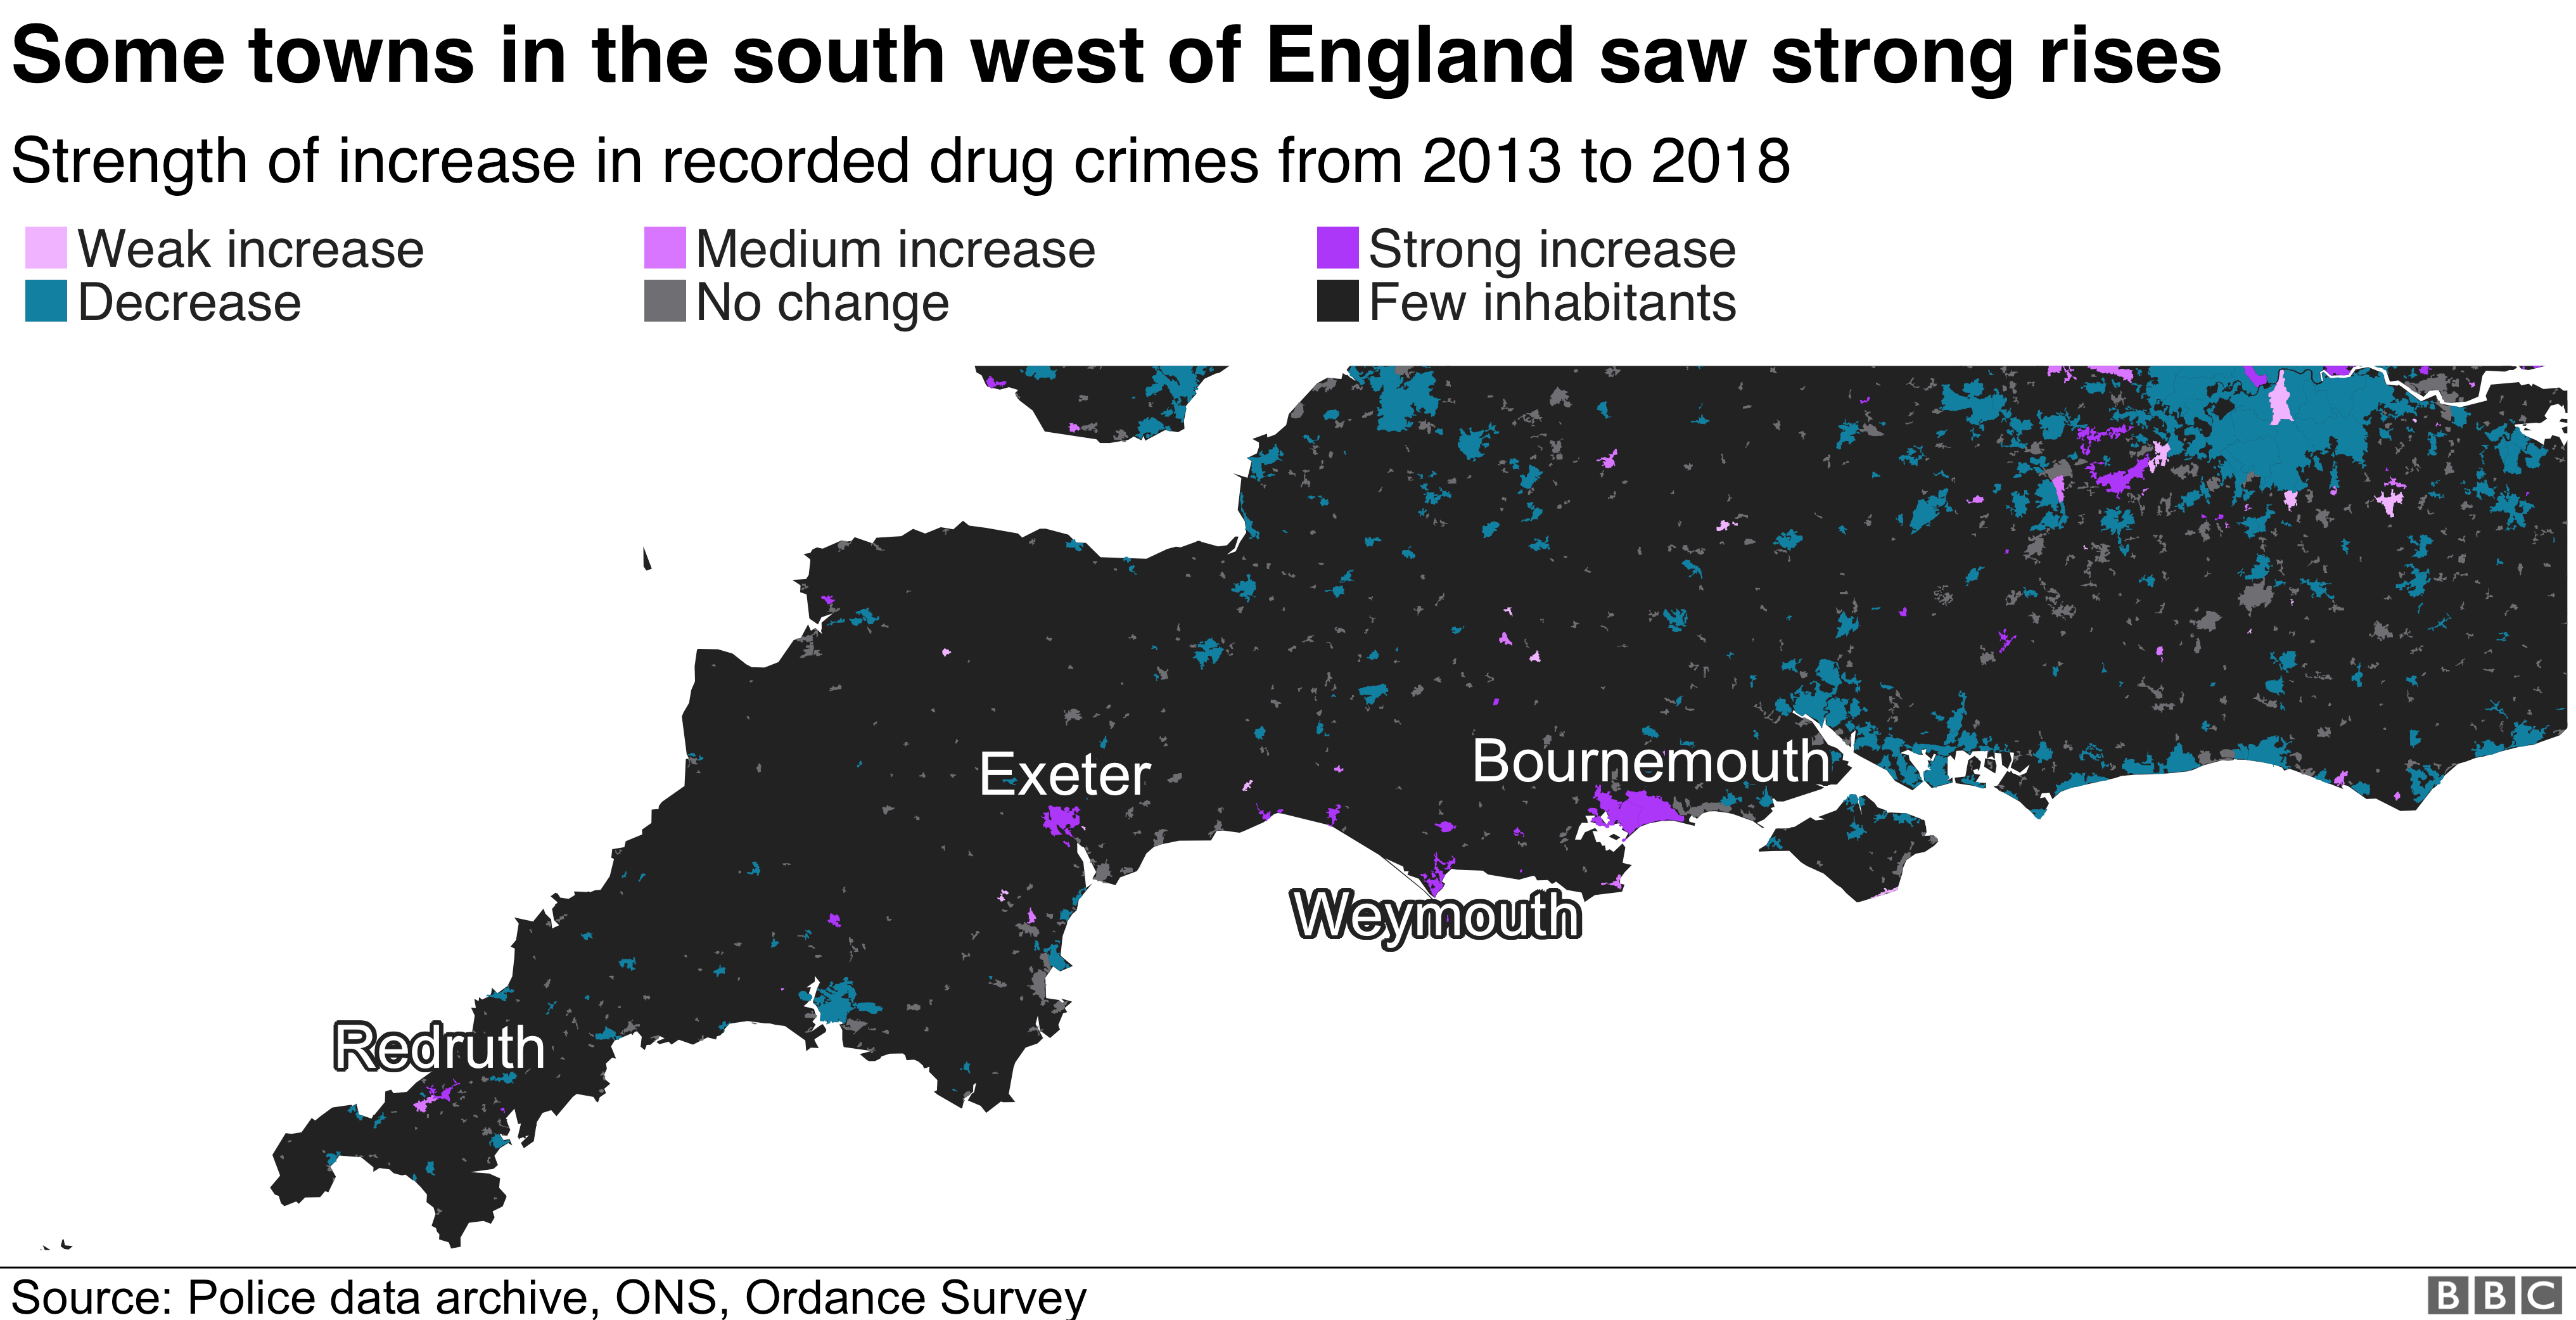 Map showing drug crimes in the south west